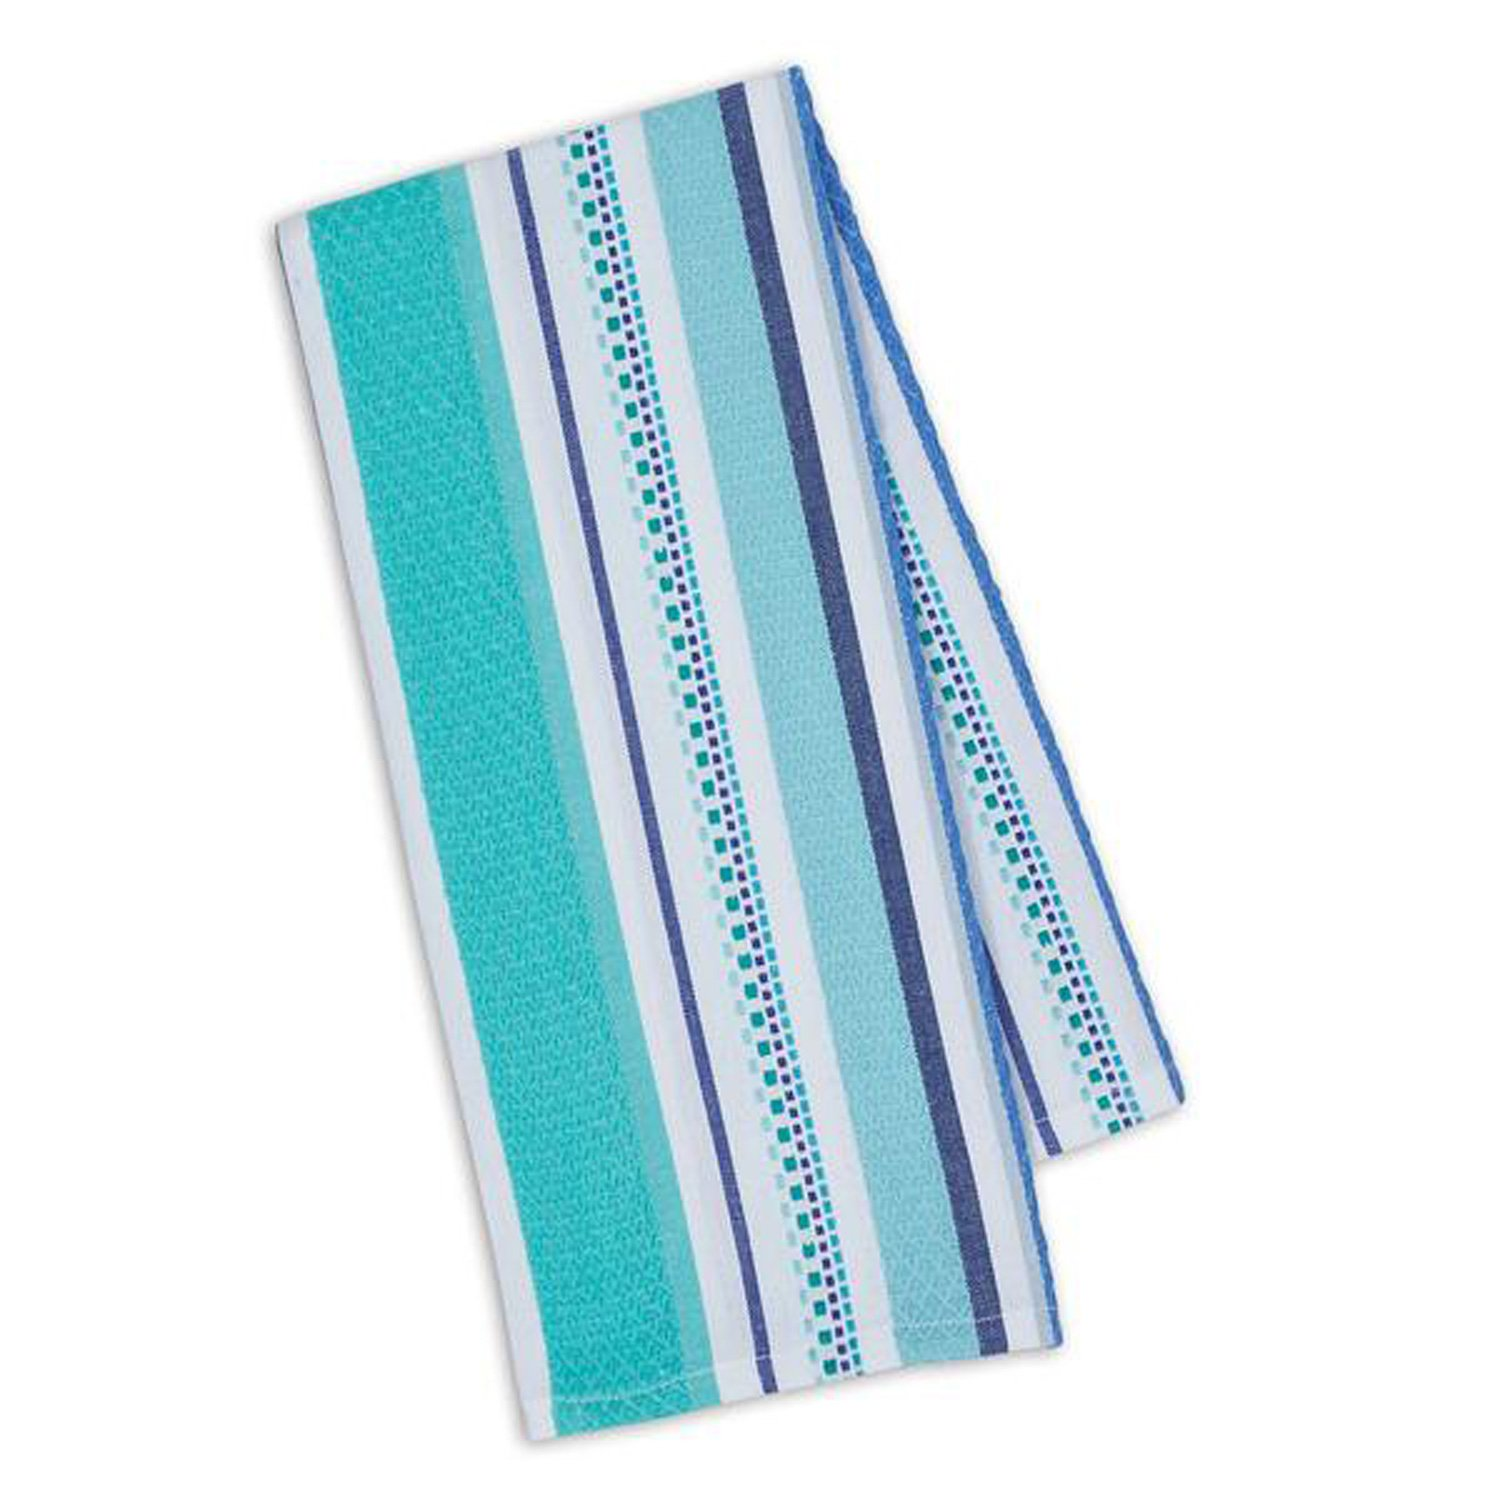 Design Imports Blue Santorini Cotton Table Linens, Dishtowel 18-Inch by 28-Inch, Santorini Dobby Stripe